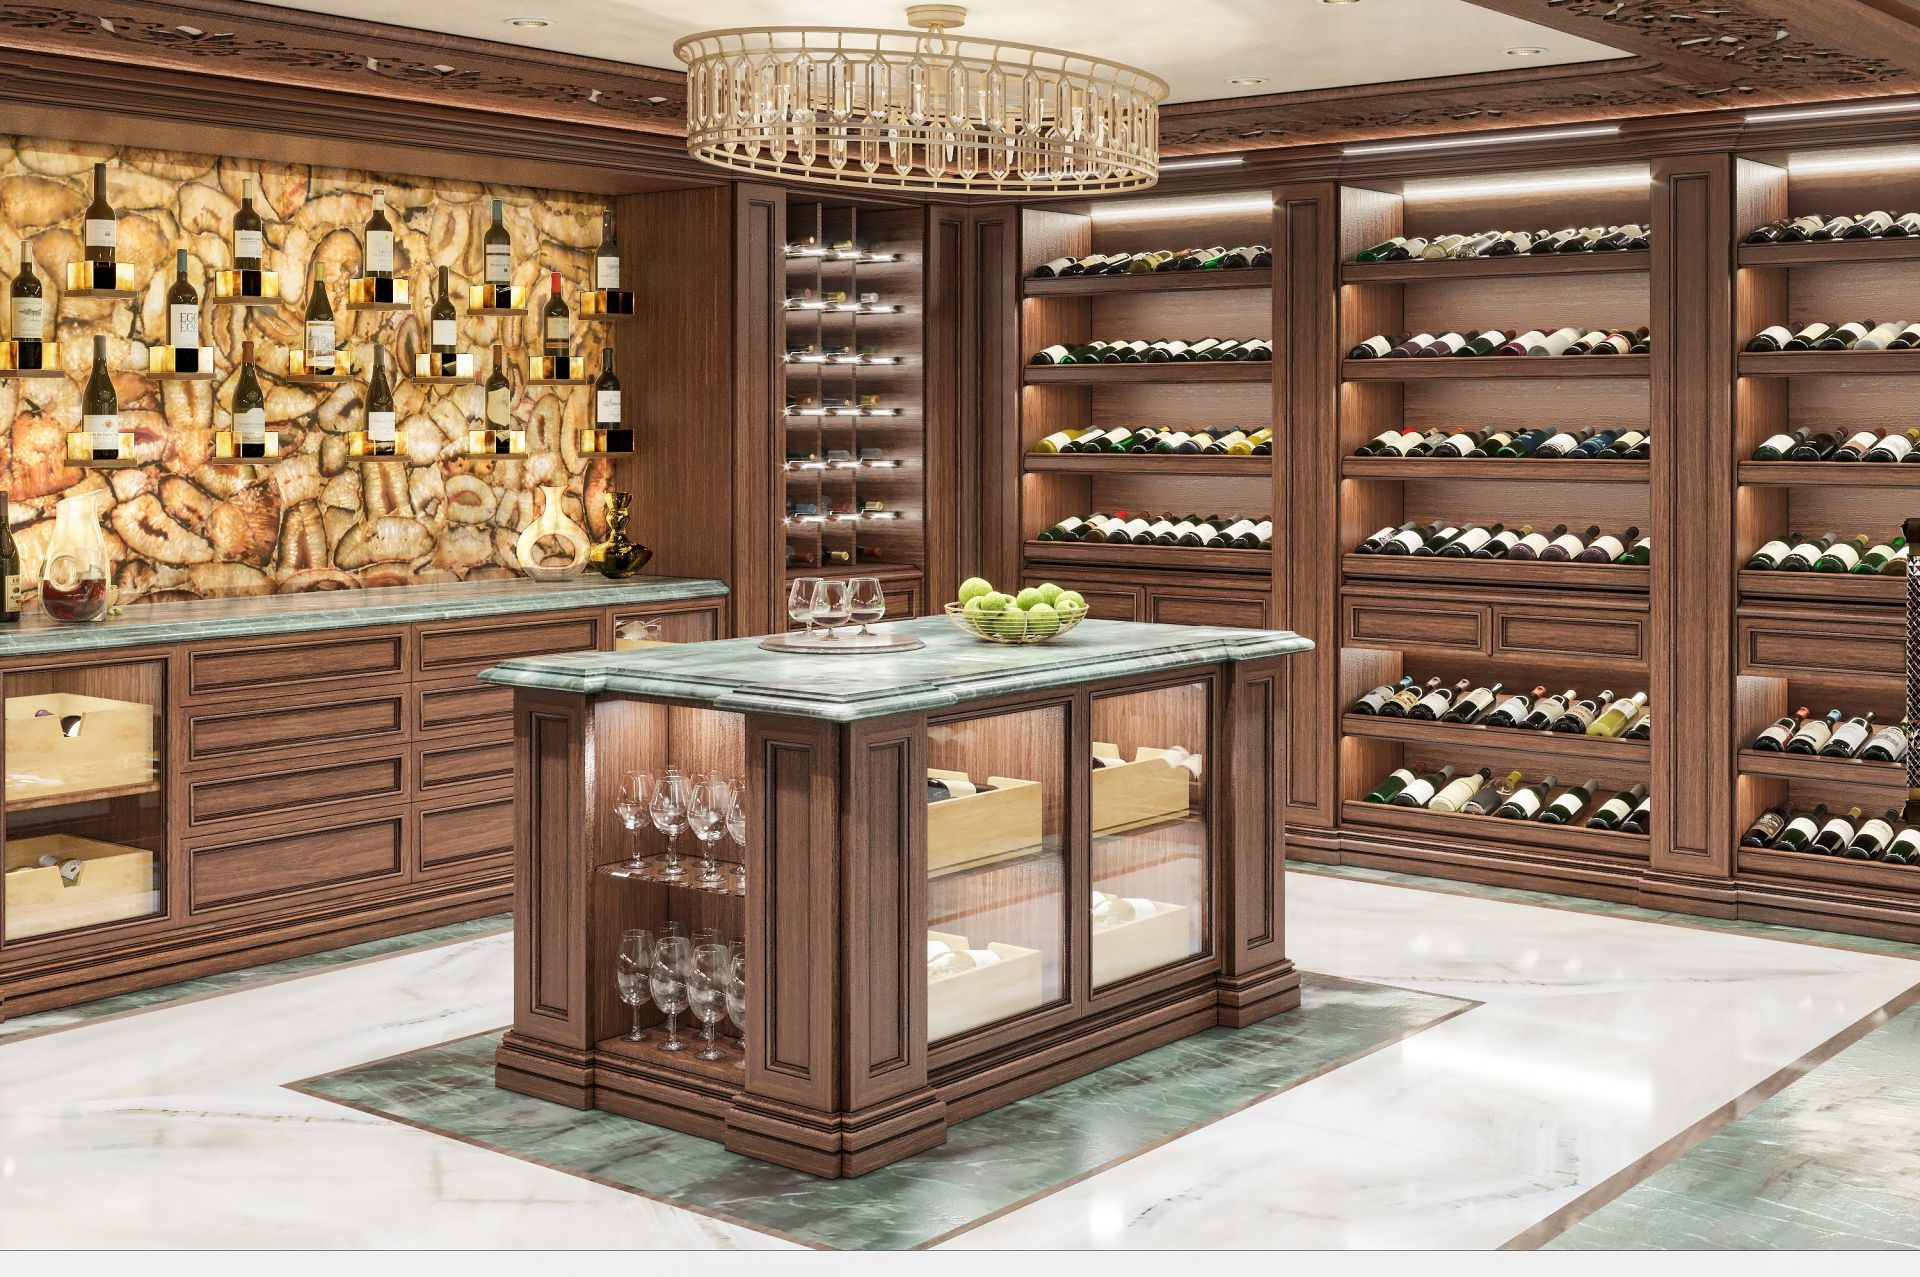 Wine cellar interior